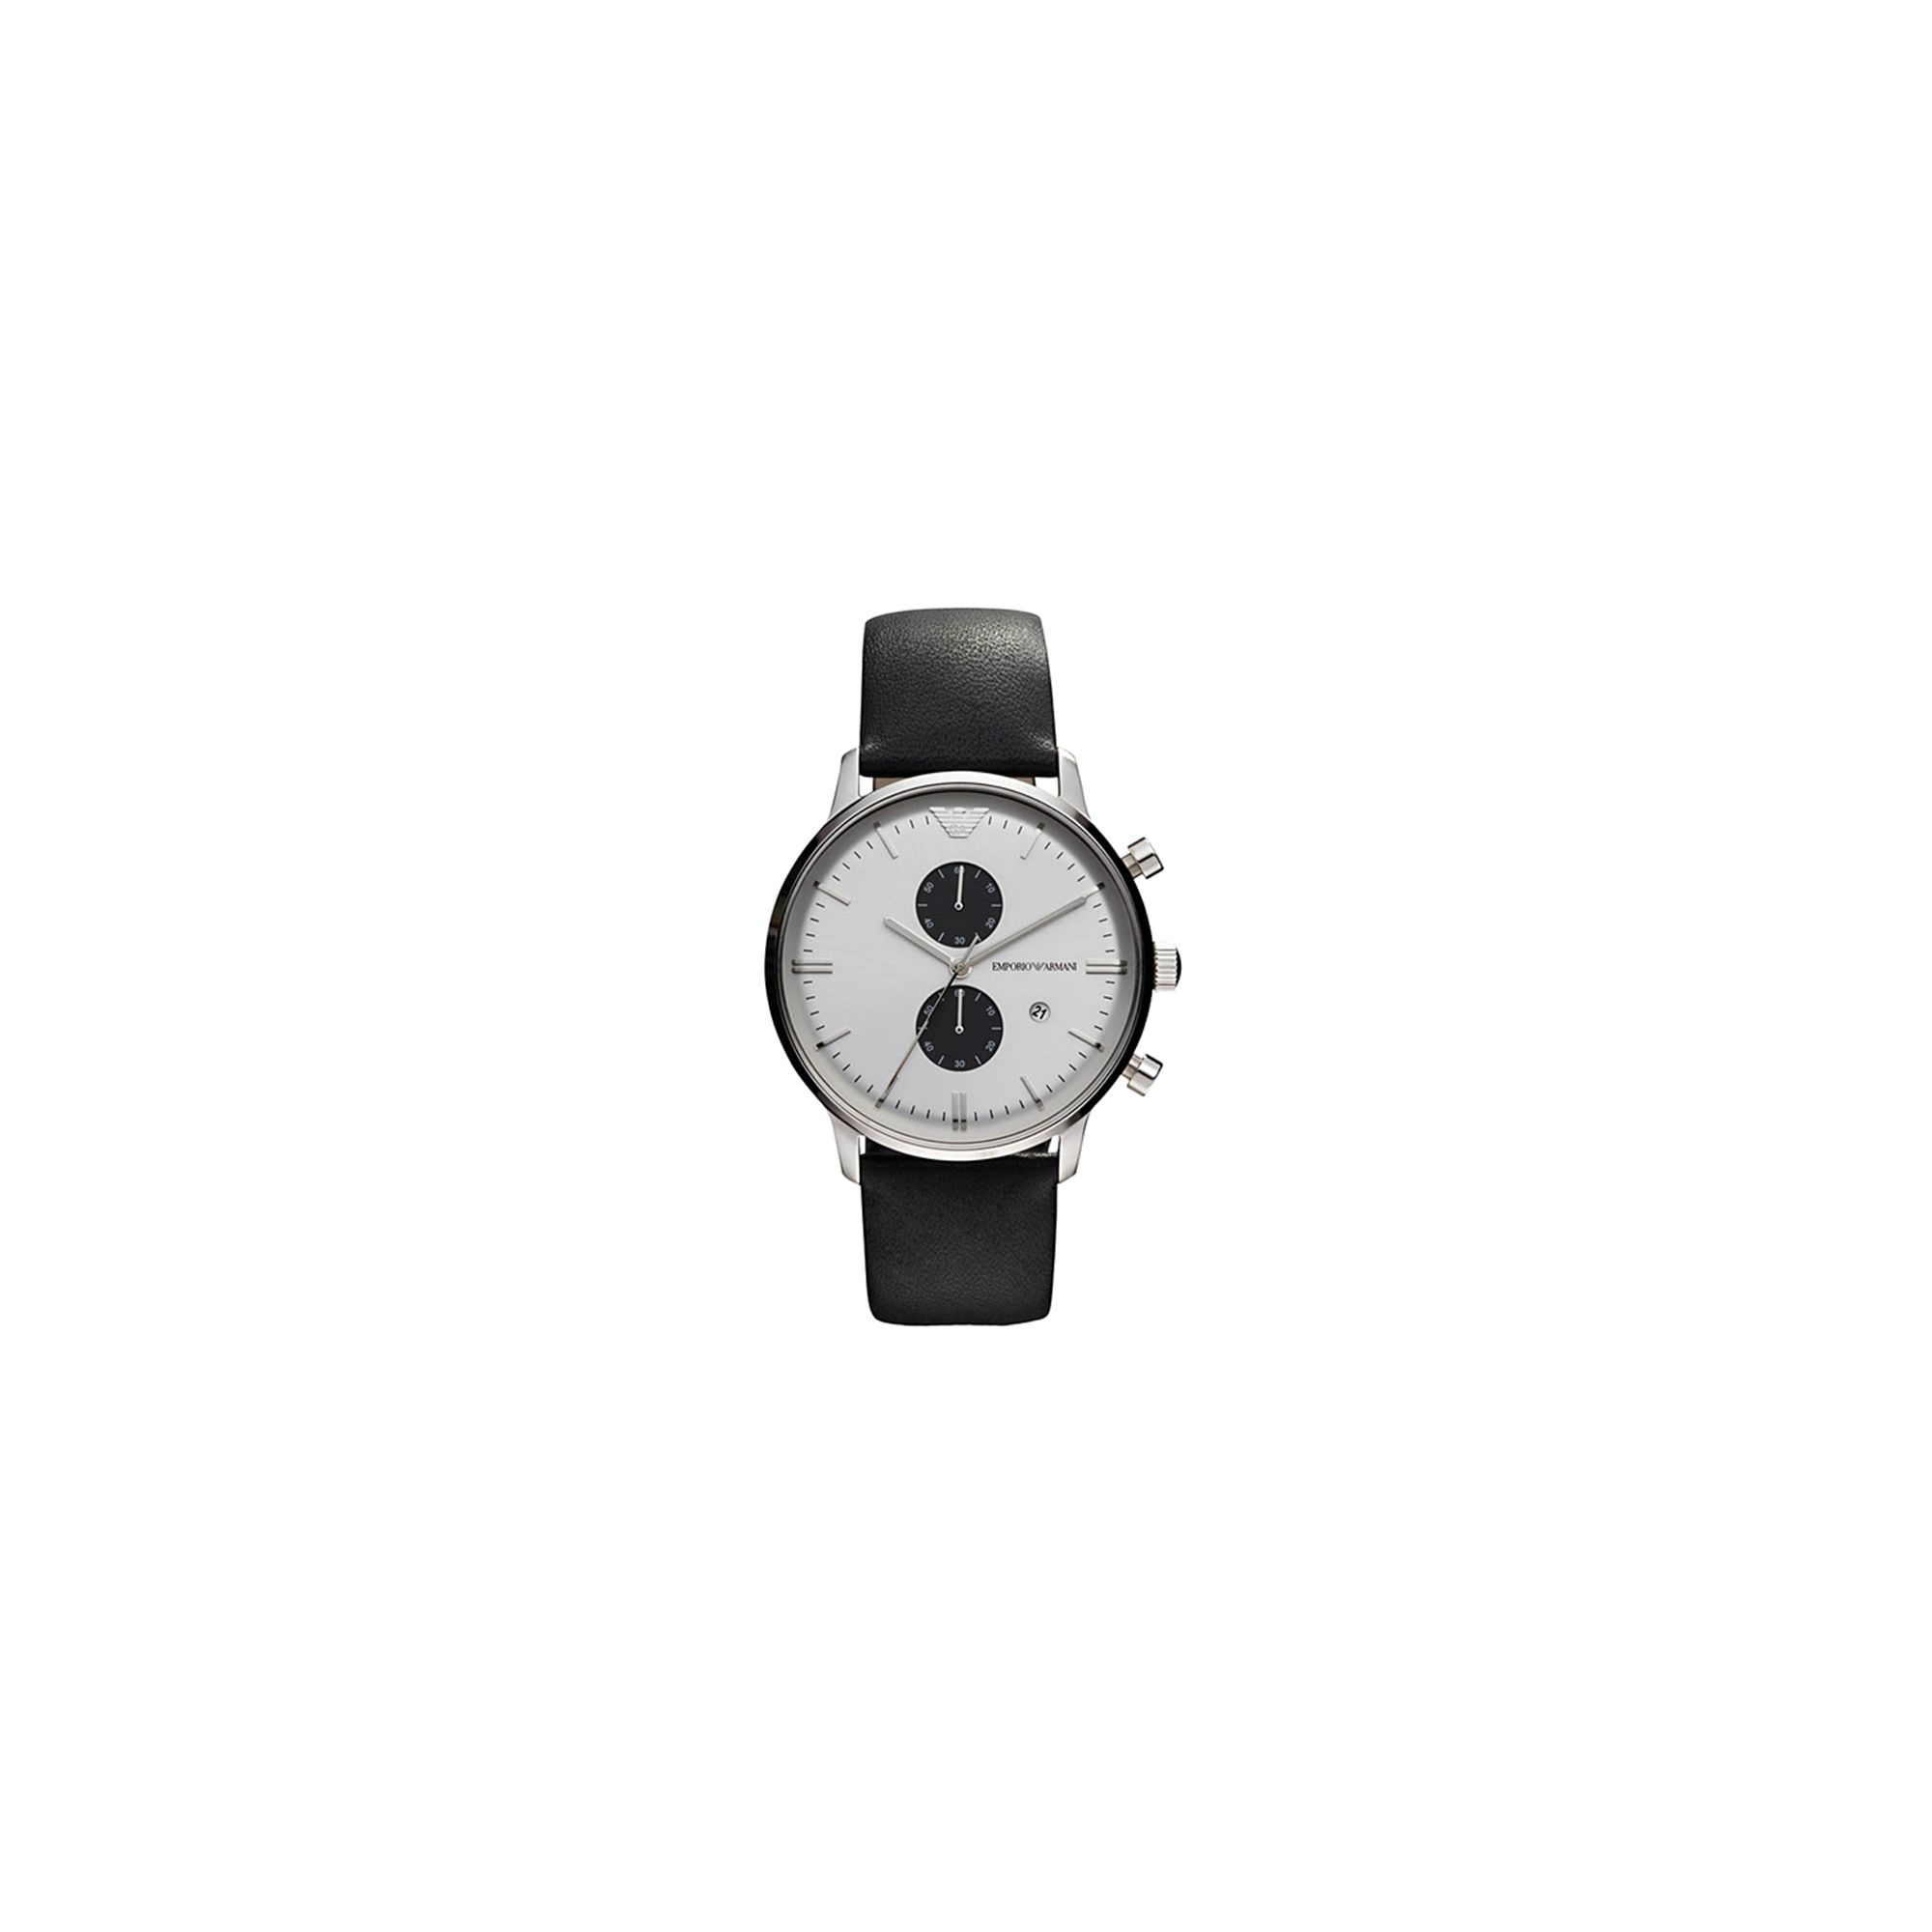 Emporio Armani Gianni Black Leather Chronograph Strap Watch AR0385 at Tesco Direct